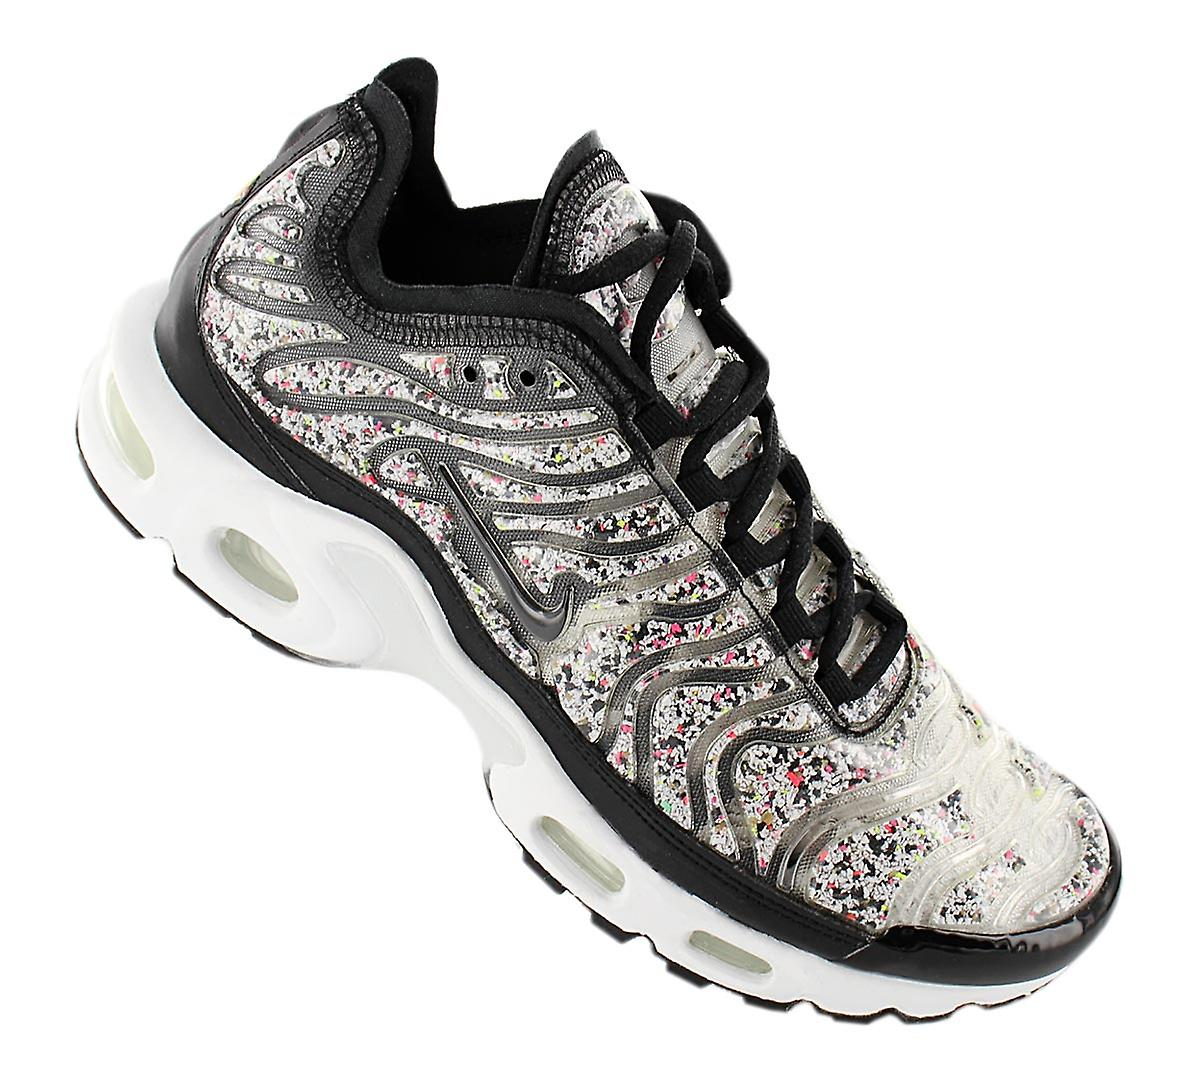 Nike Air Max Plus TN Luxury LX - PEBBLES - AR0970-001 Women's Shoes Sneakers Sports Shoes